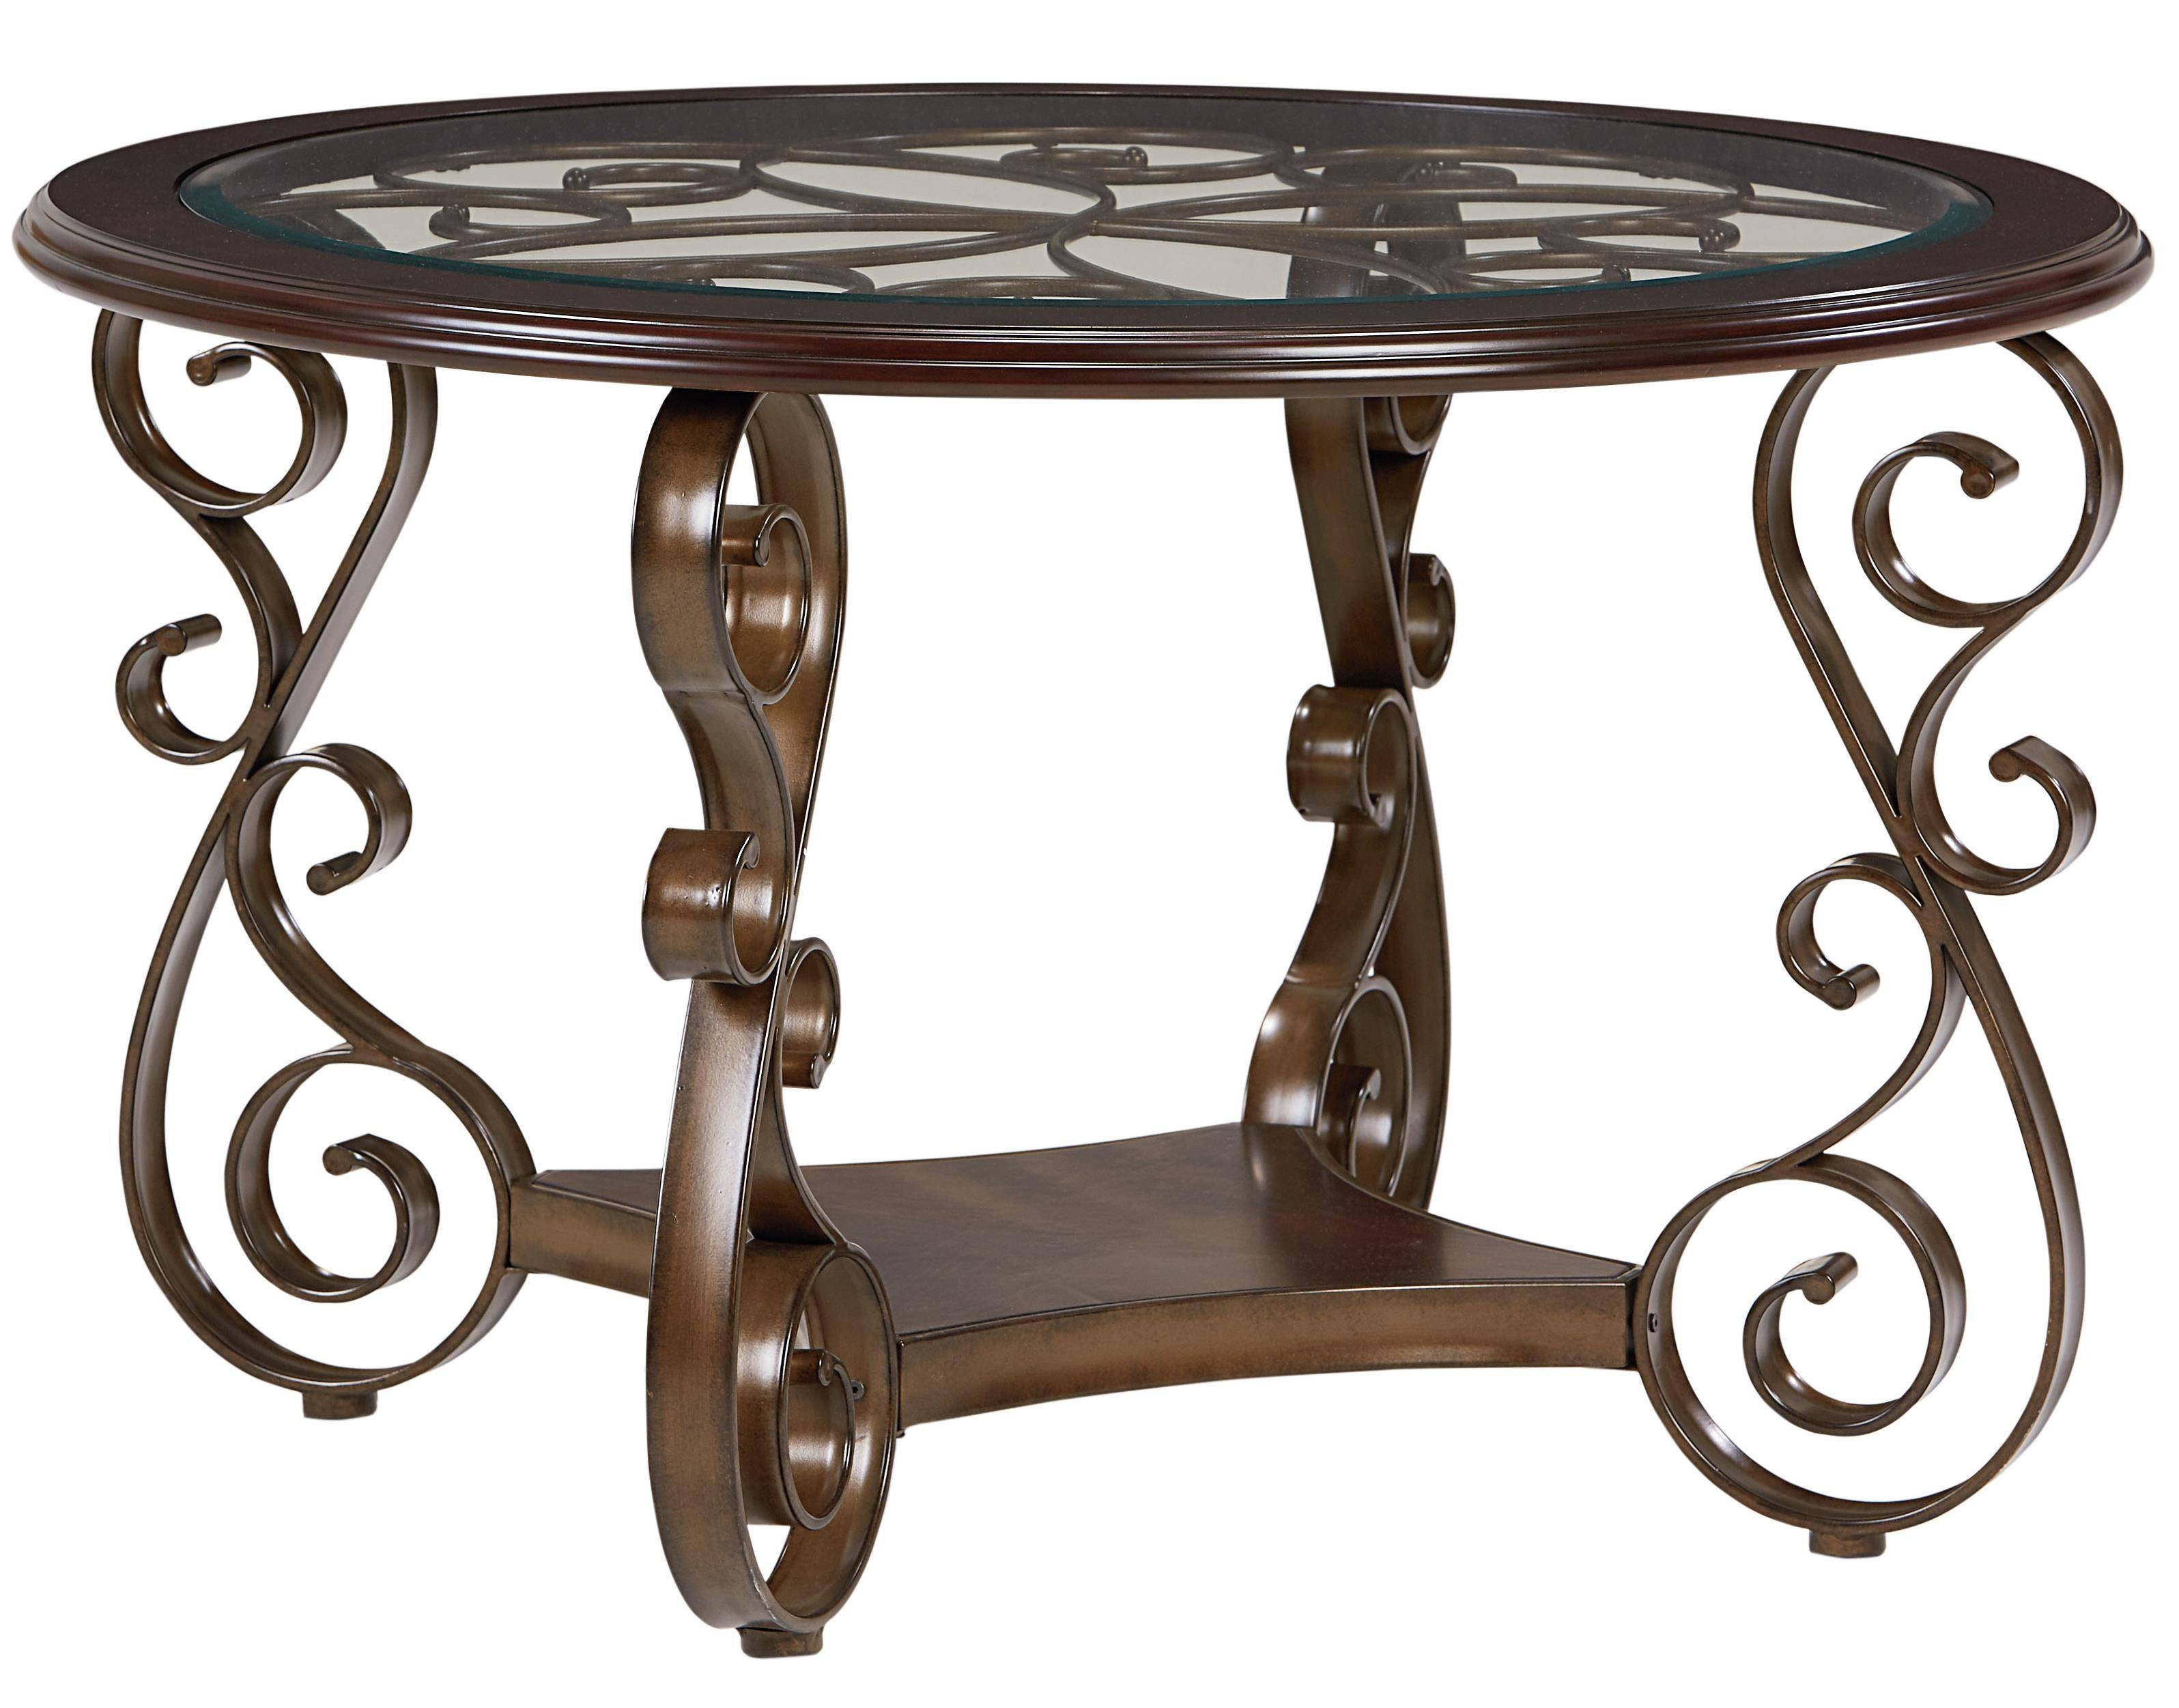 Standard Furniture Bombay Round Dining Table With Metal Scroll Within Bombay Coffee Tables (Photo 12 of 30)